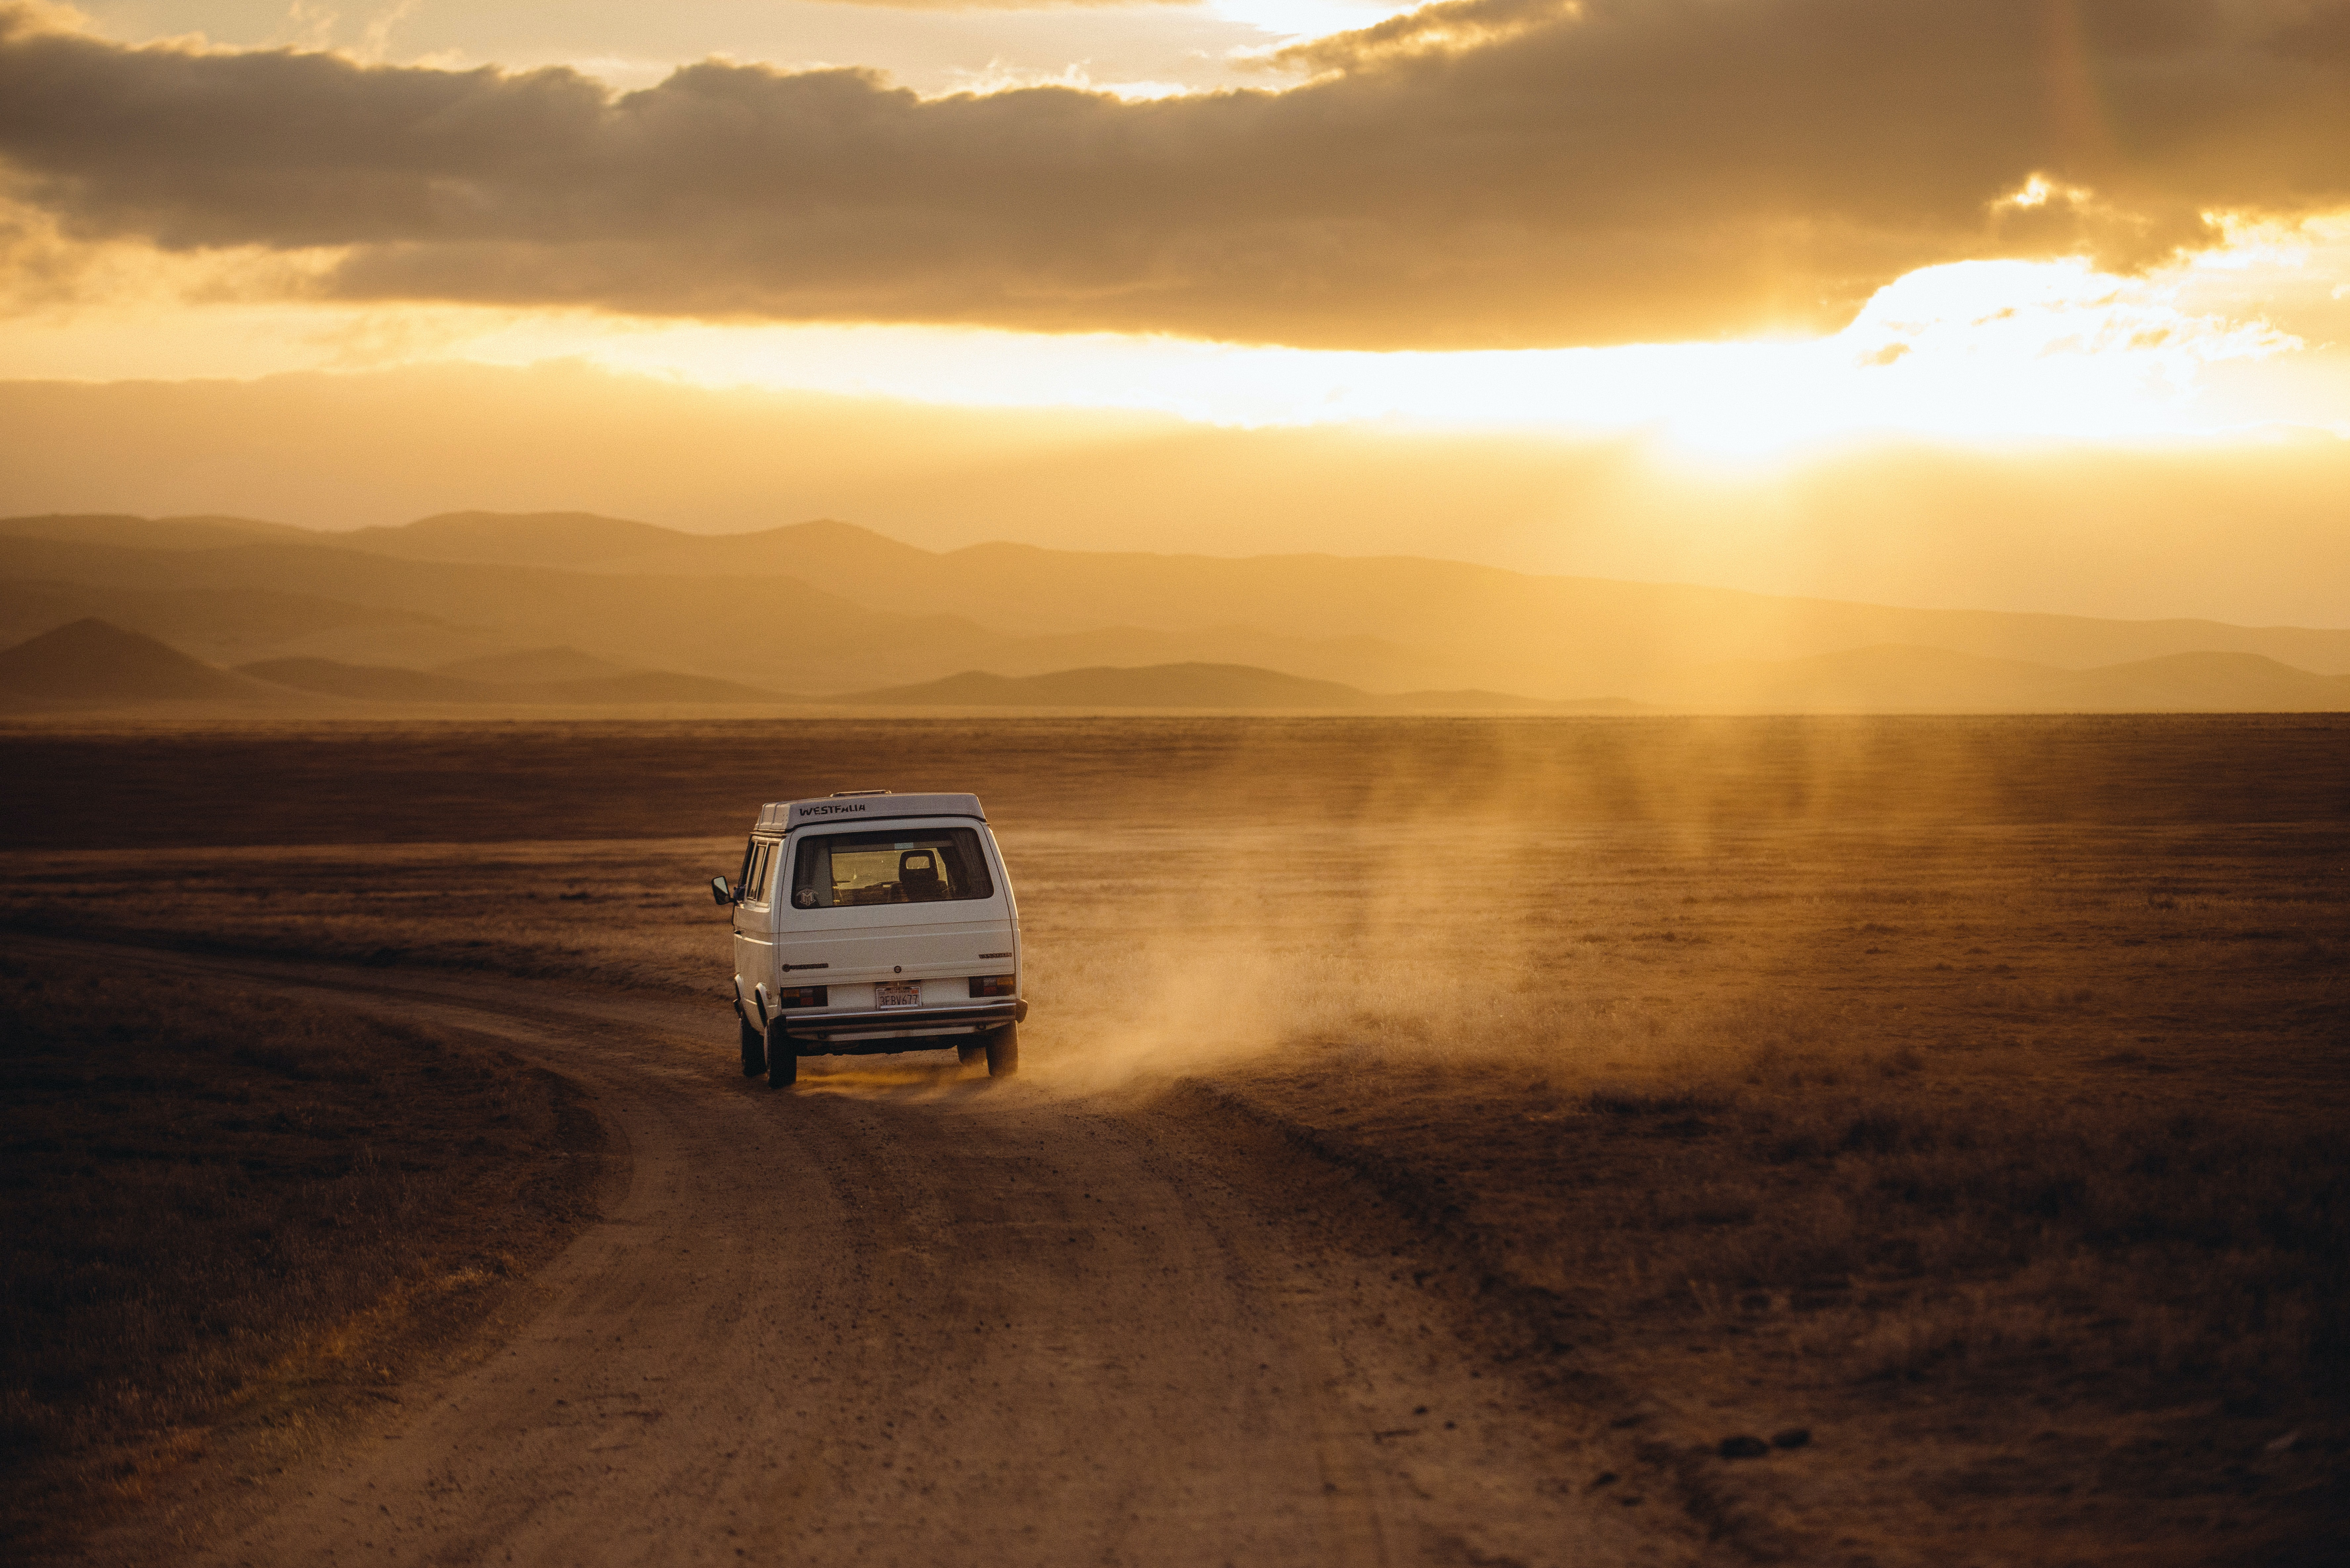 white vehicle traveling desert land field during sunset